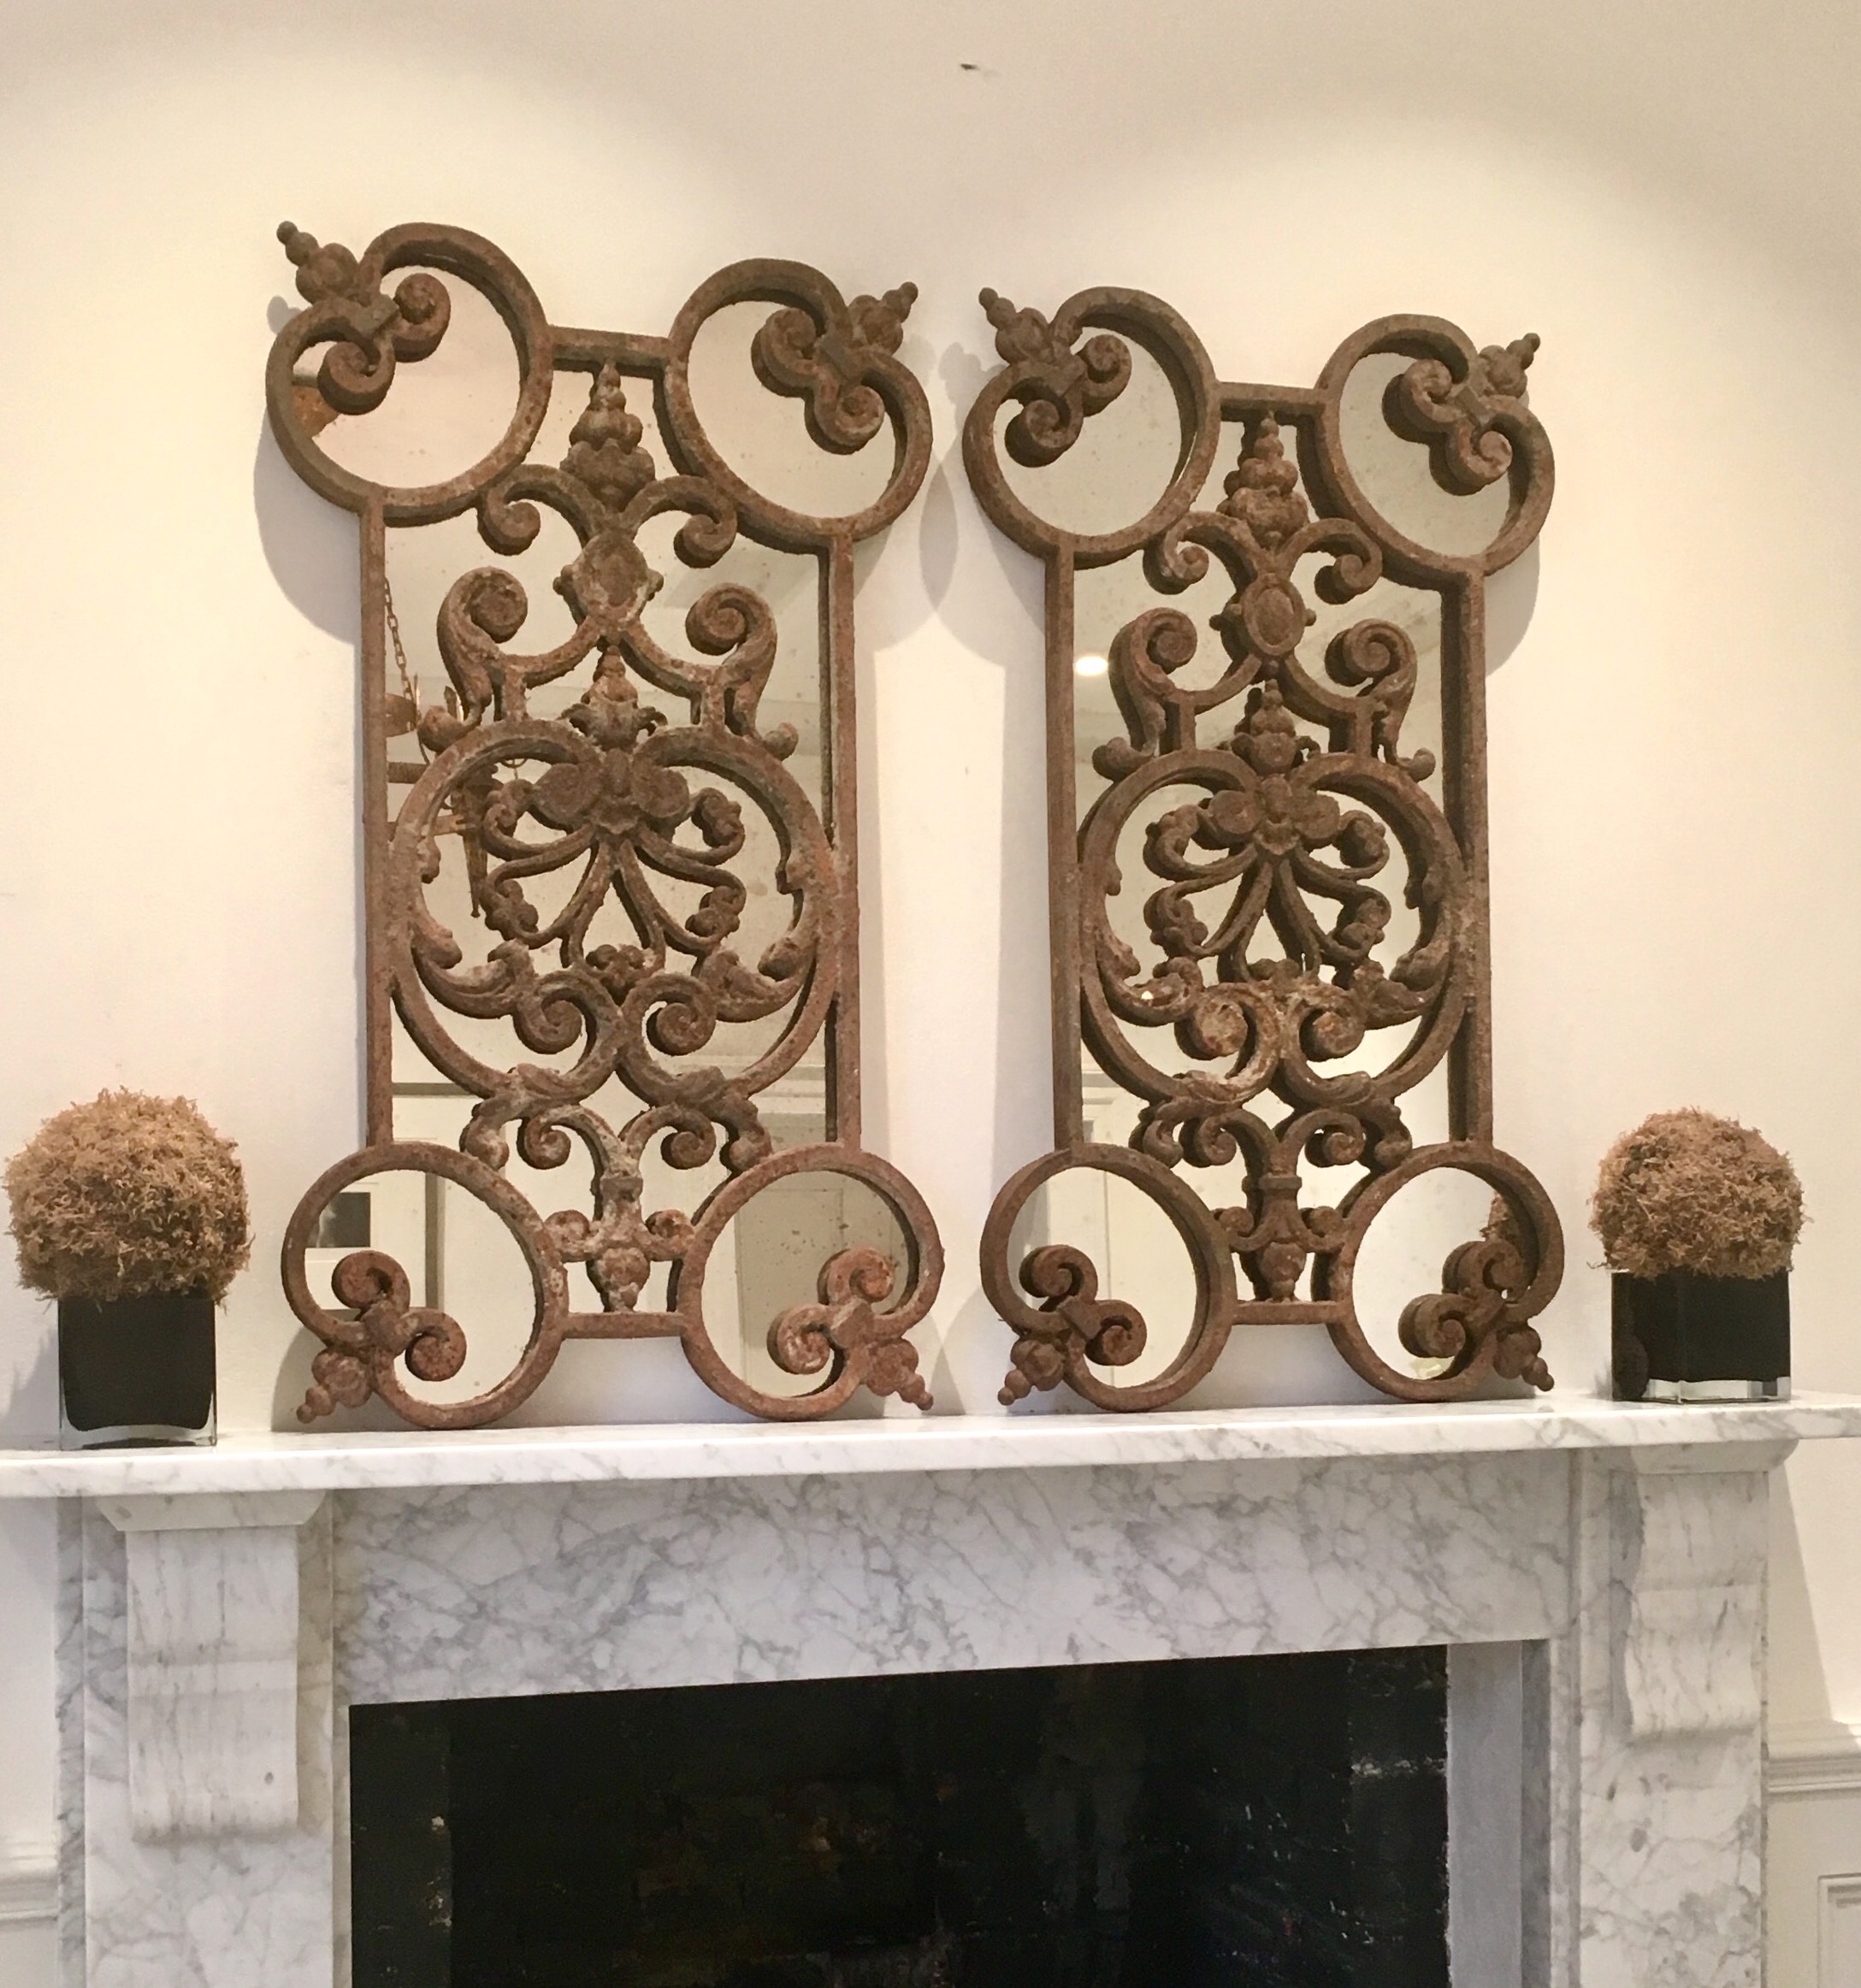 Reclaimed Decorative Rustic Ironwork Mirrors Reclaimed